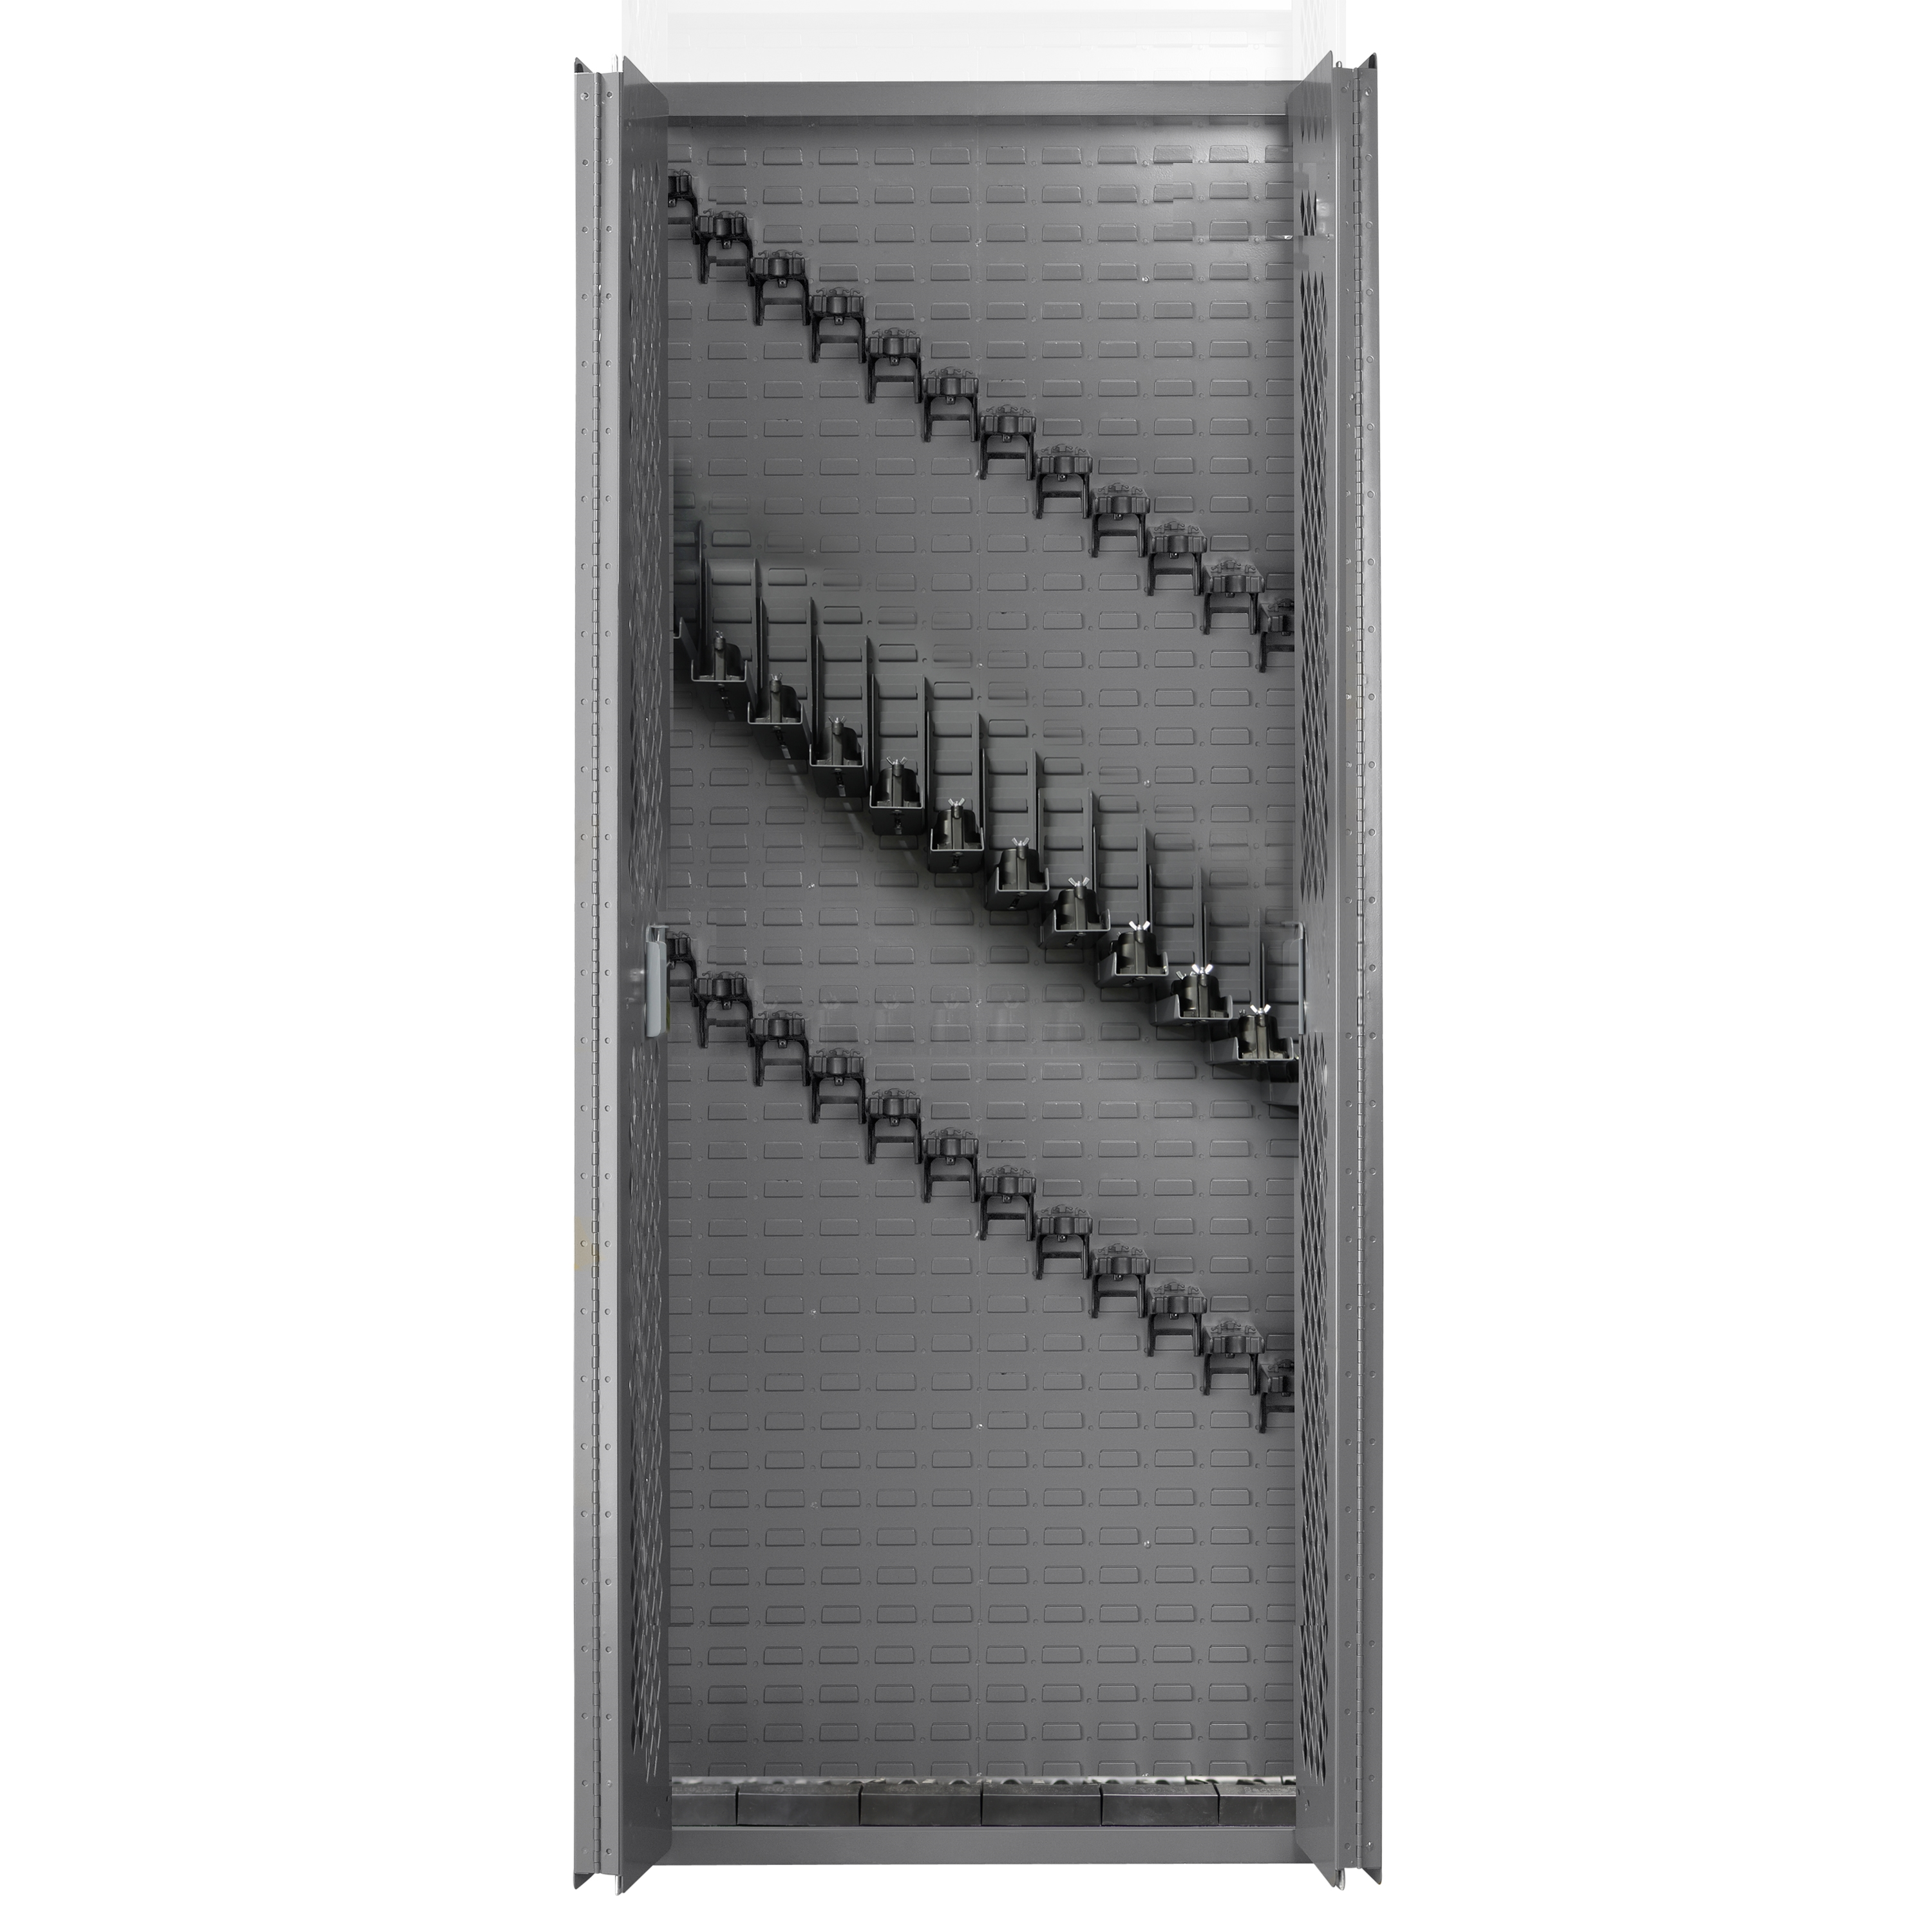 SecureIt Tactical Model 84: 24 Gun Storage Cabinet with Adjustable Single Stock Shelves - SEC-300-24RS